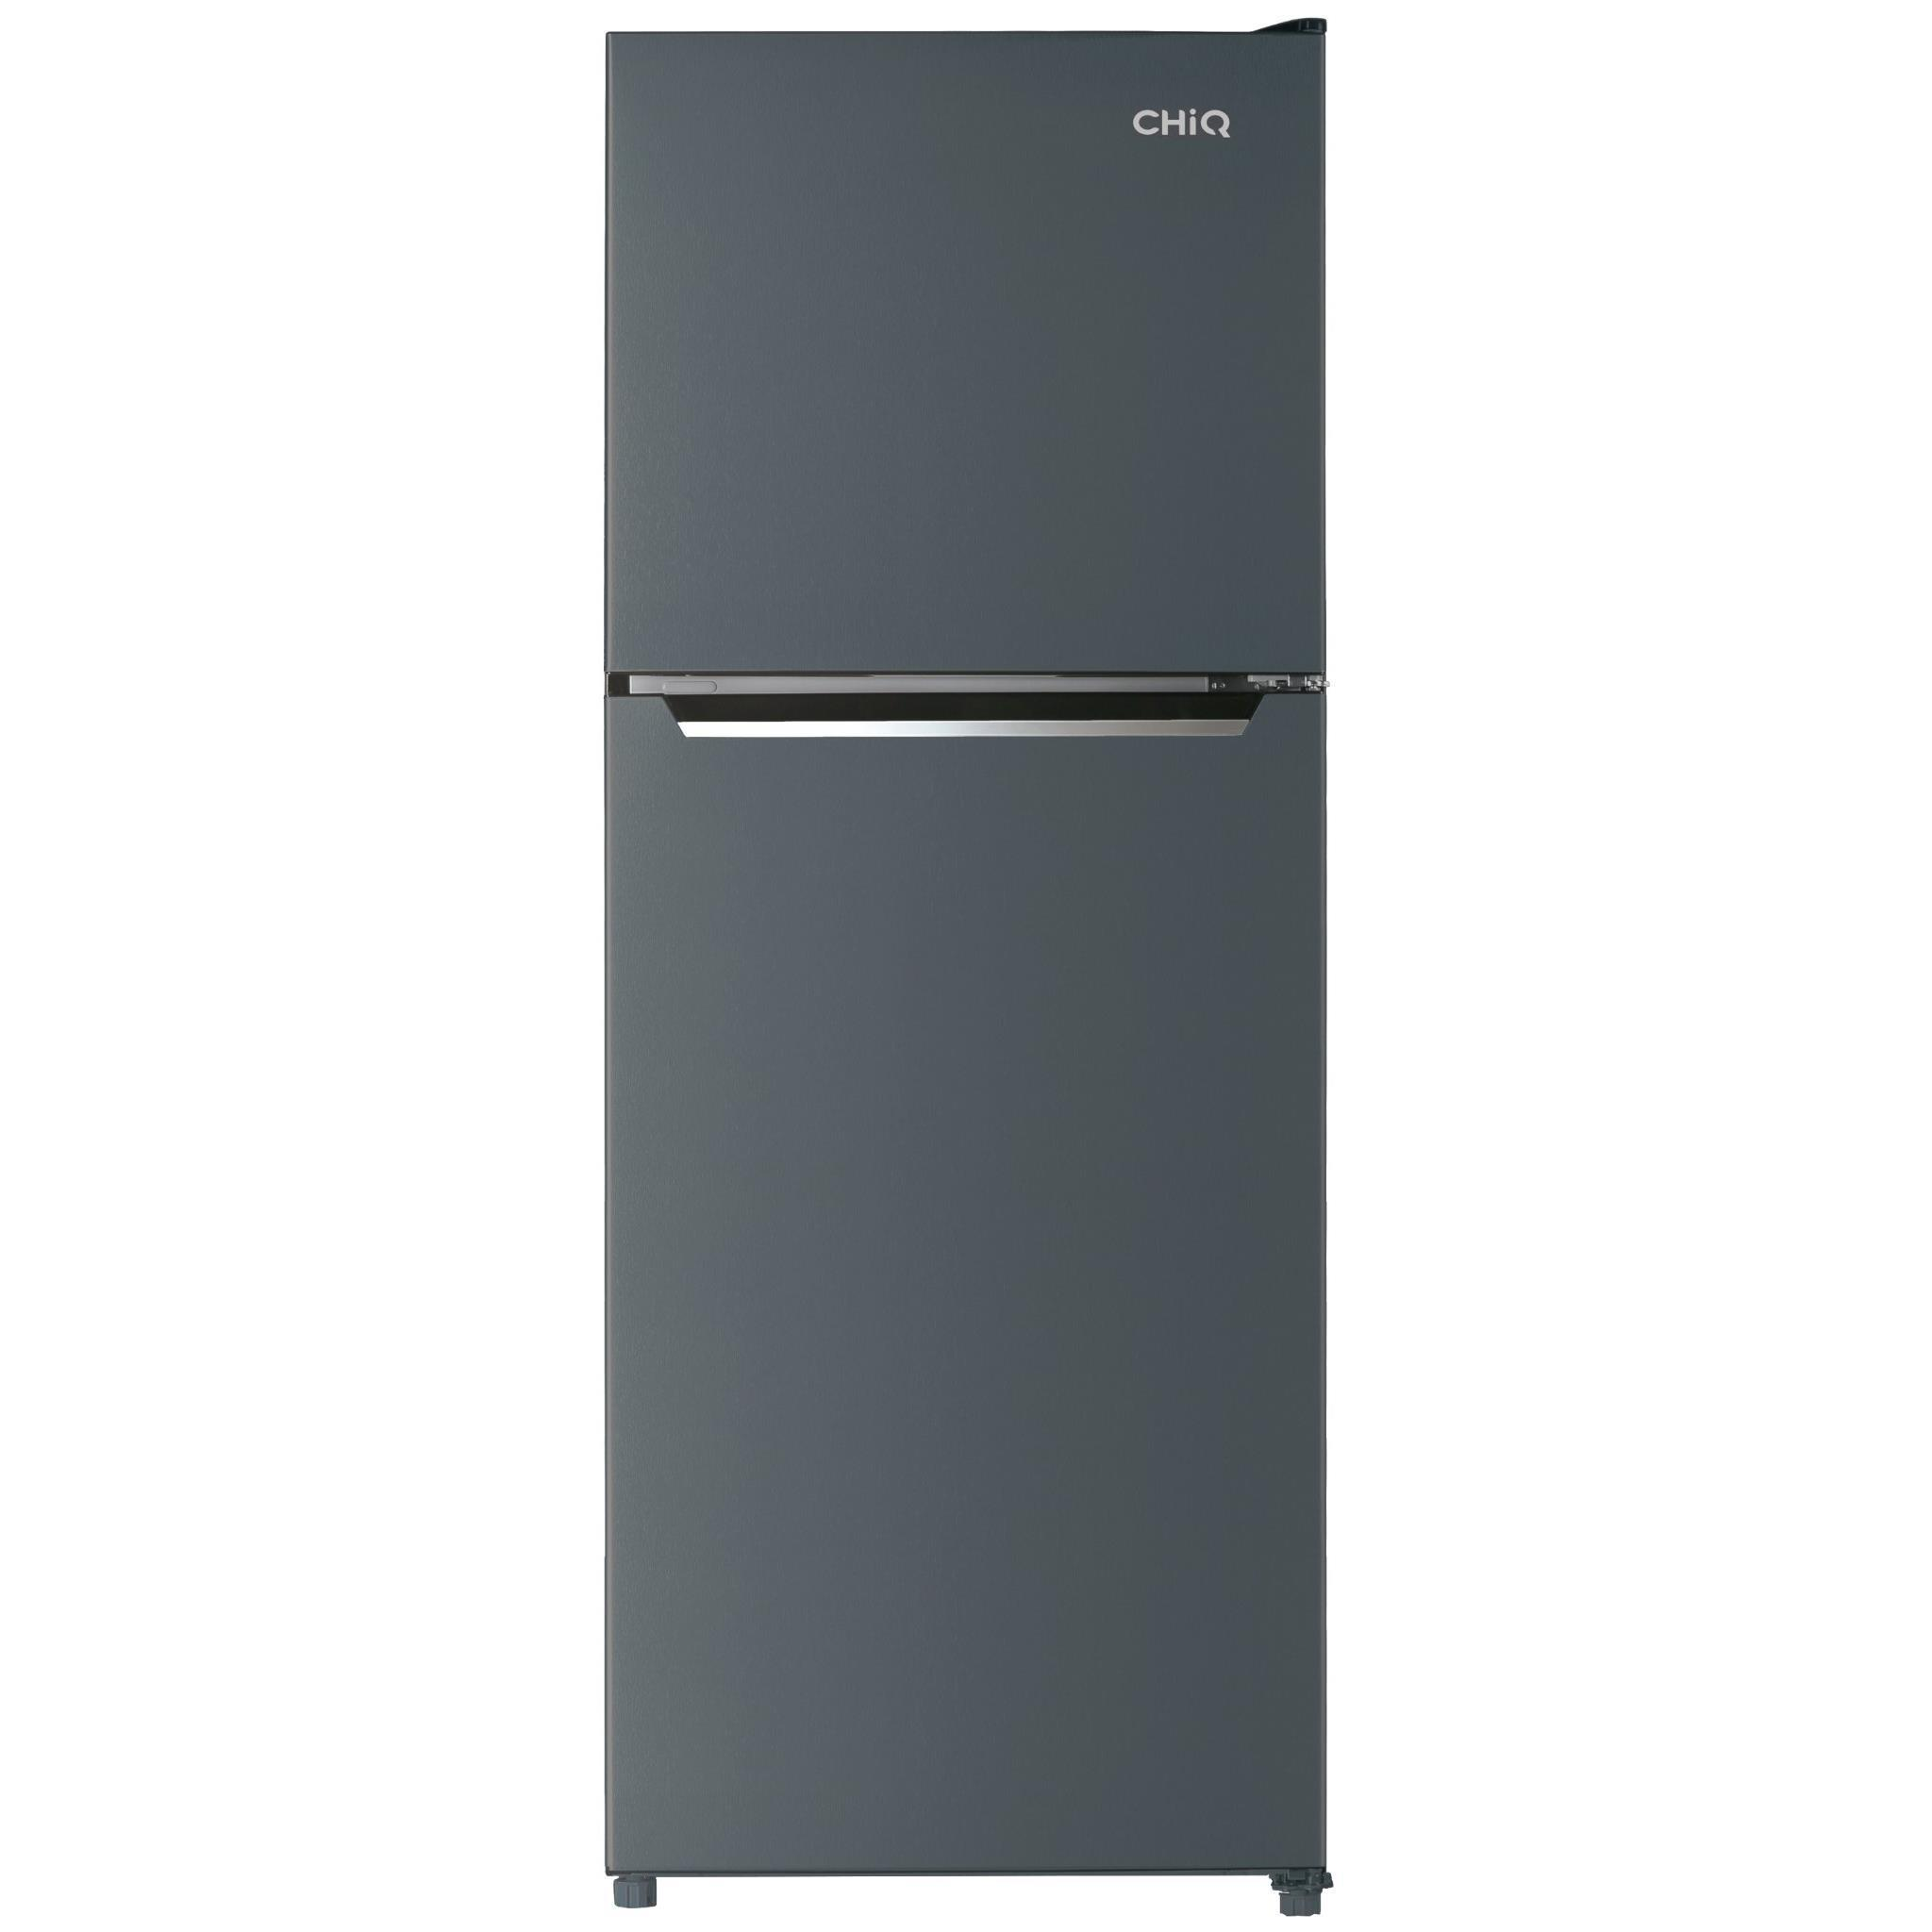 CHiQ CTM318B 318L Top Mount Fridge (Black Steel)